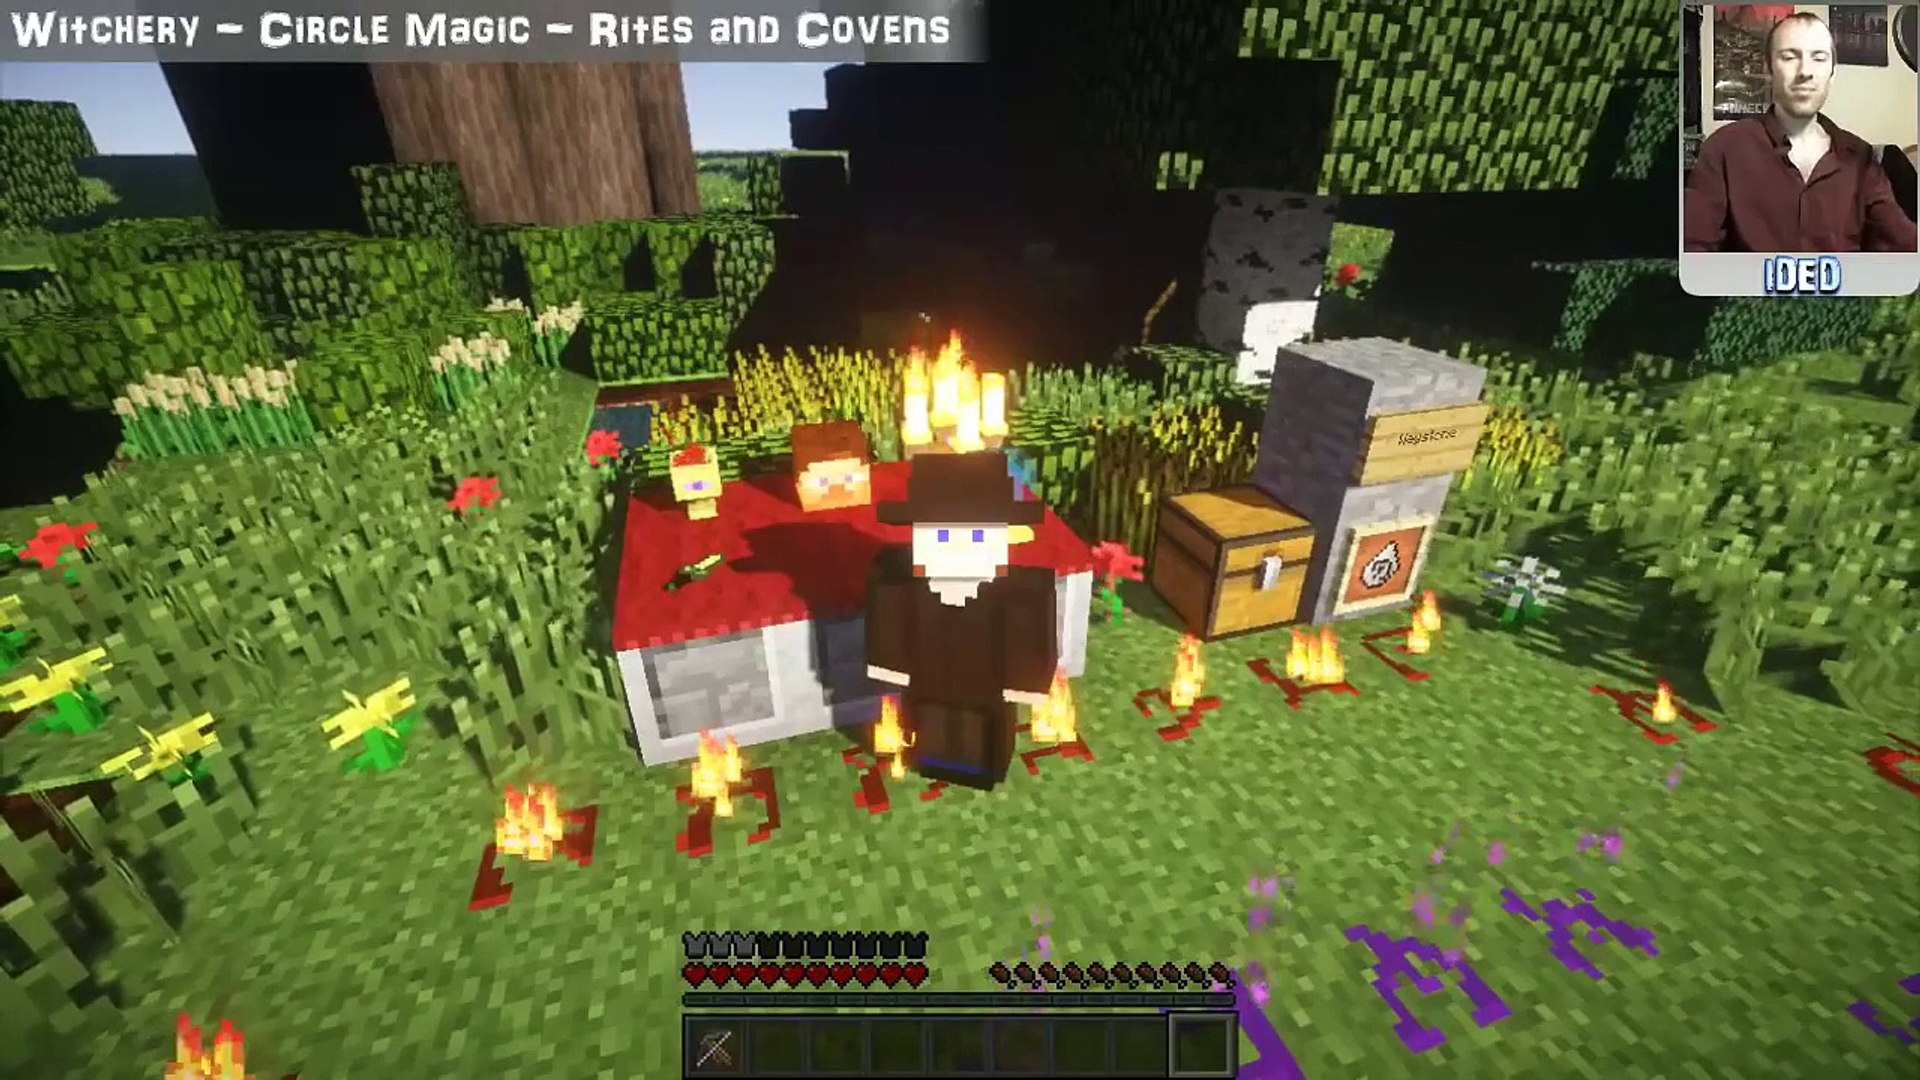 Witchery Mod Tutorial - Circle Magic Rites and Covens - Minecraft Mod